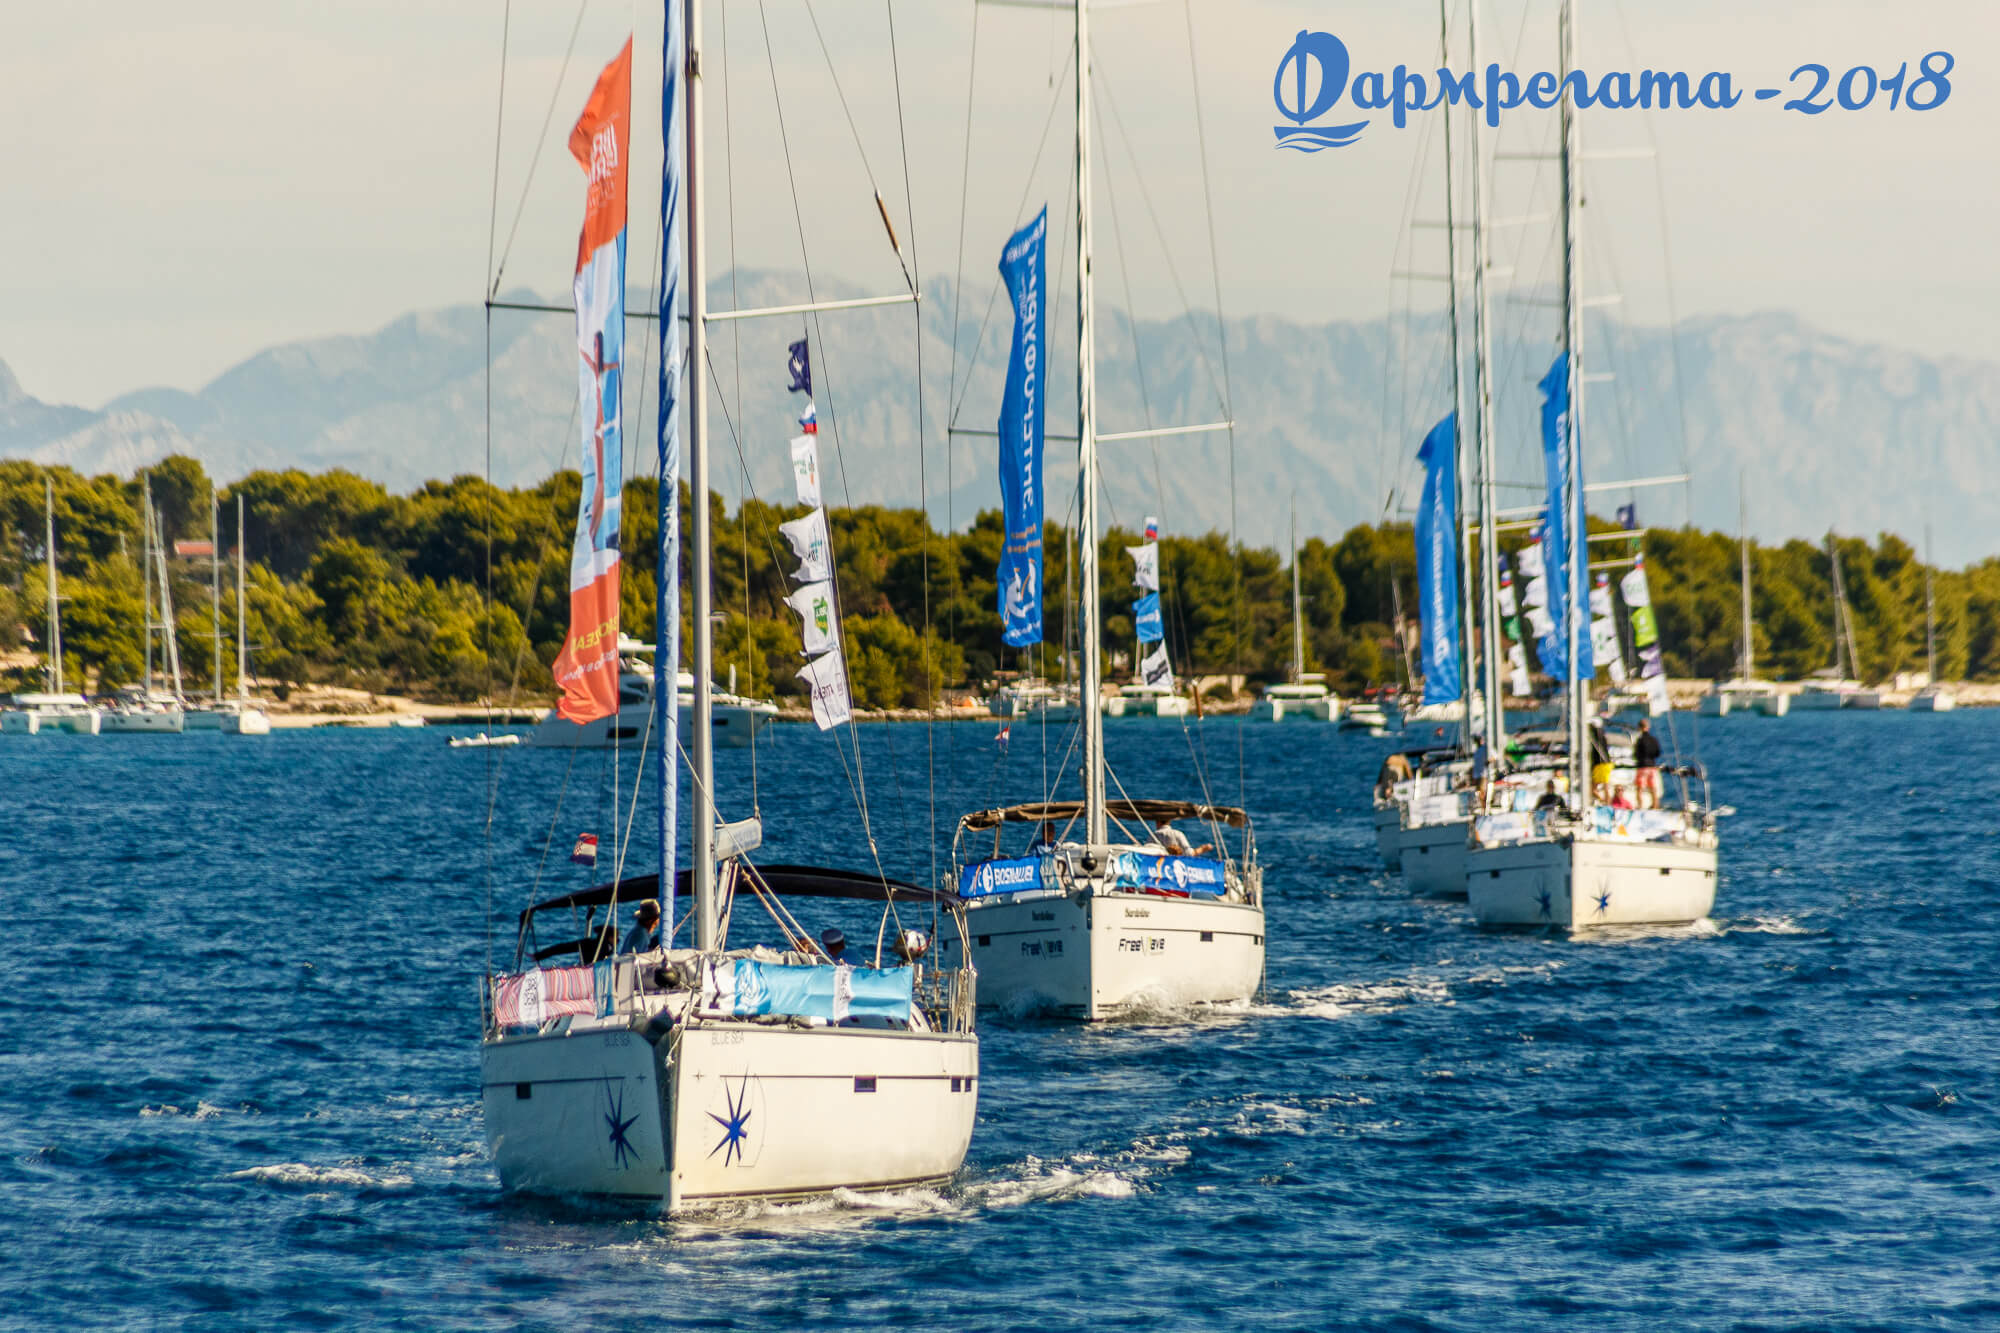 Регата, море, яхты - ДСМ групп Фармрегата 2018 - DSM Group Pharmregata 2018